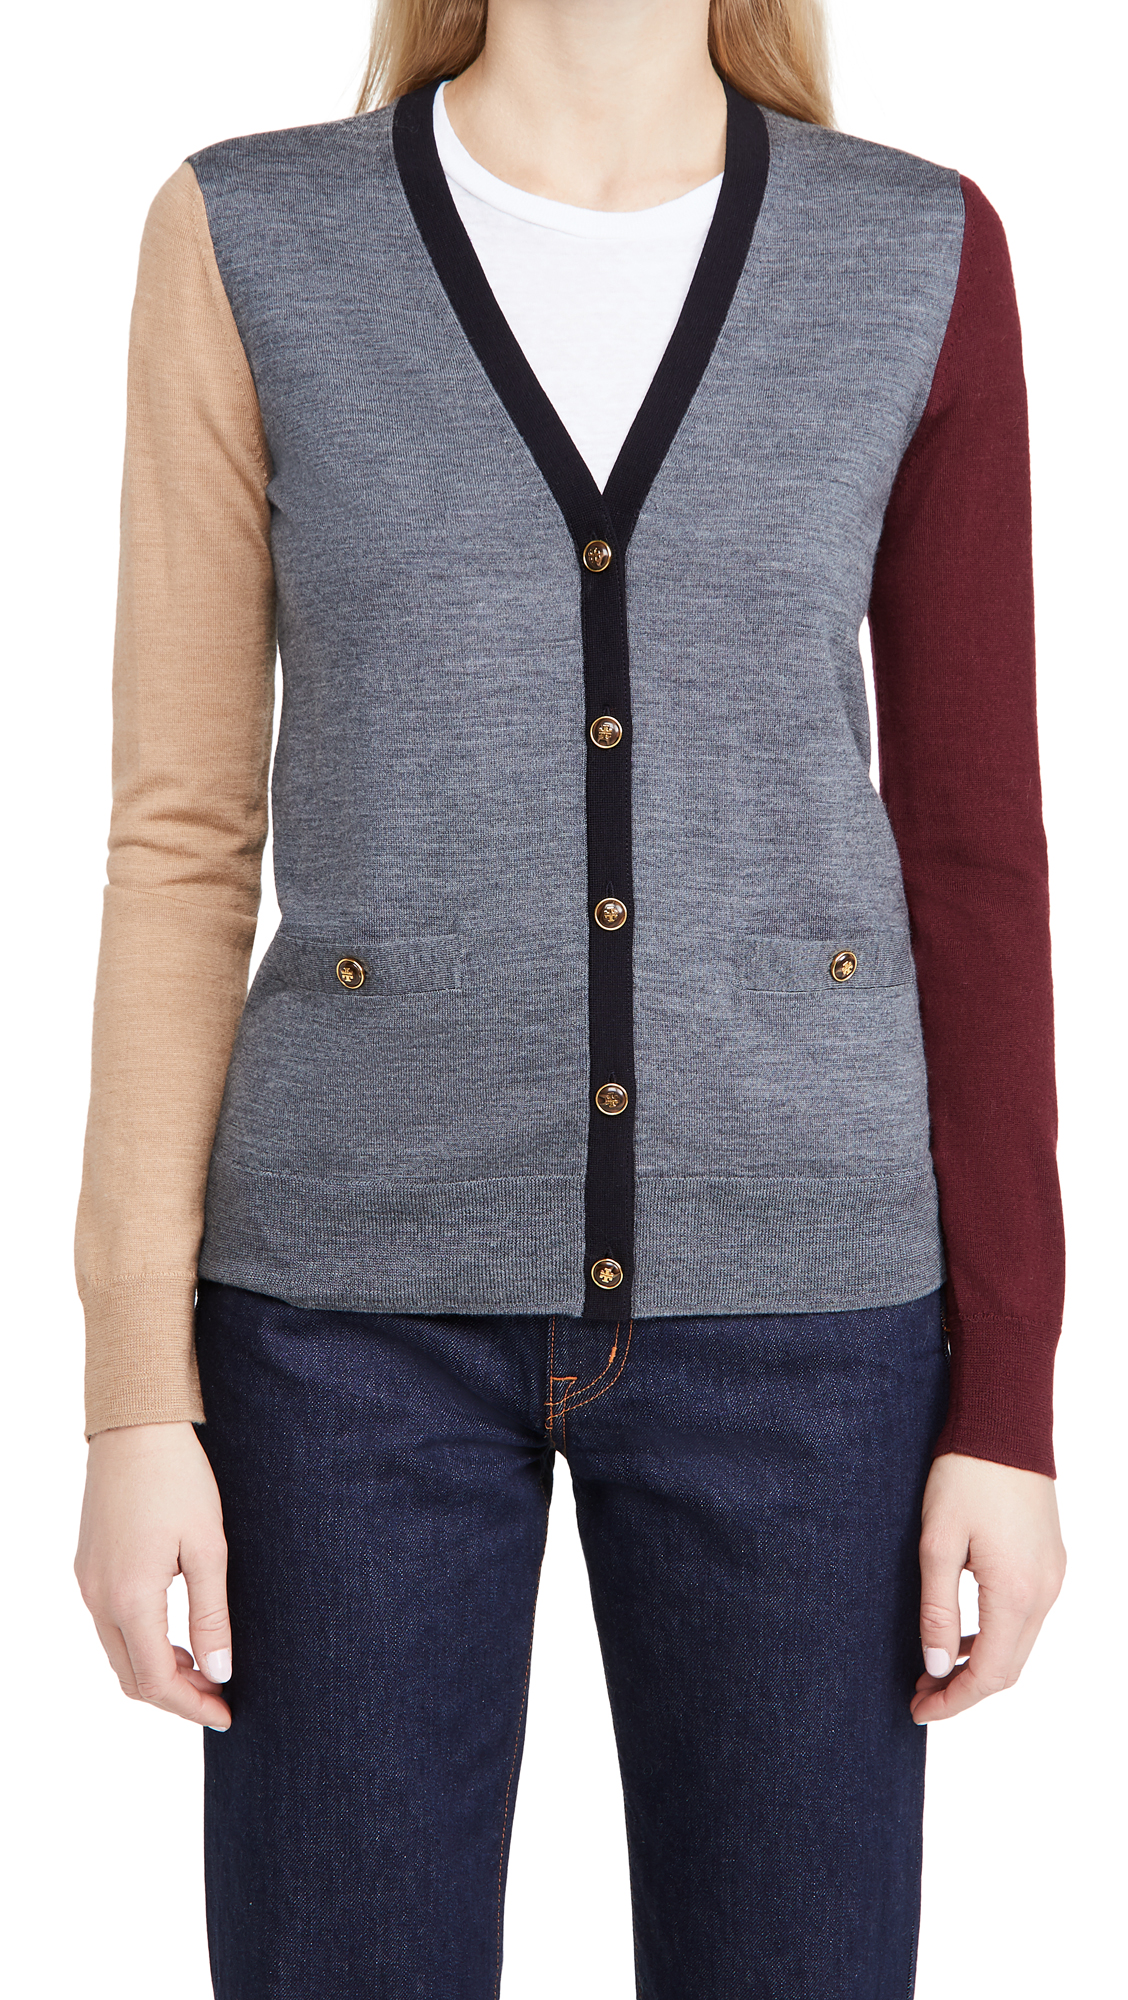 Tory Burch Colorblock Trim Madeline Cardigan